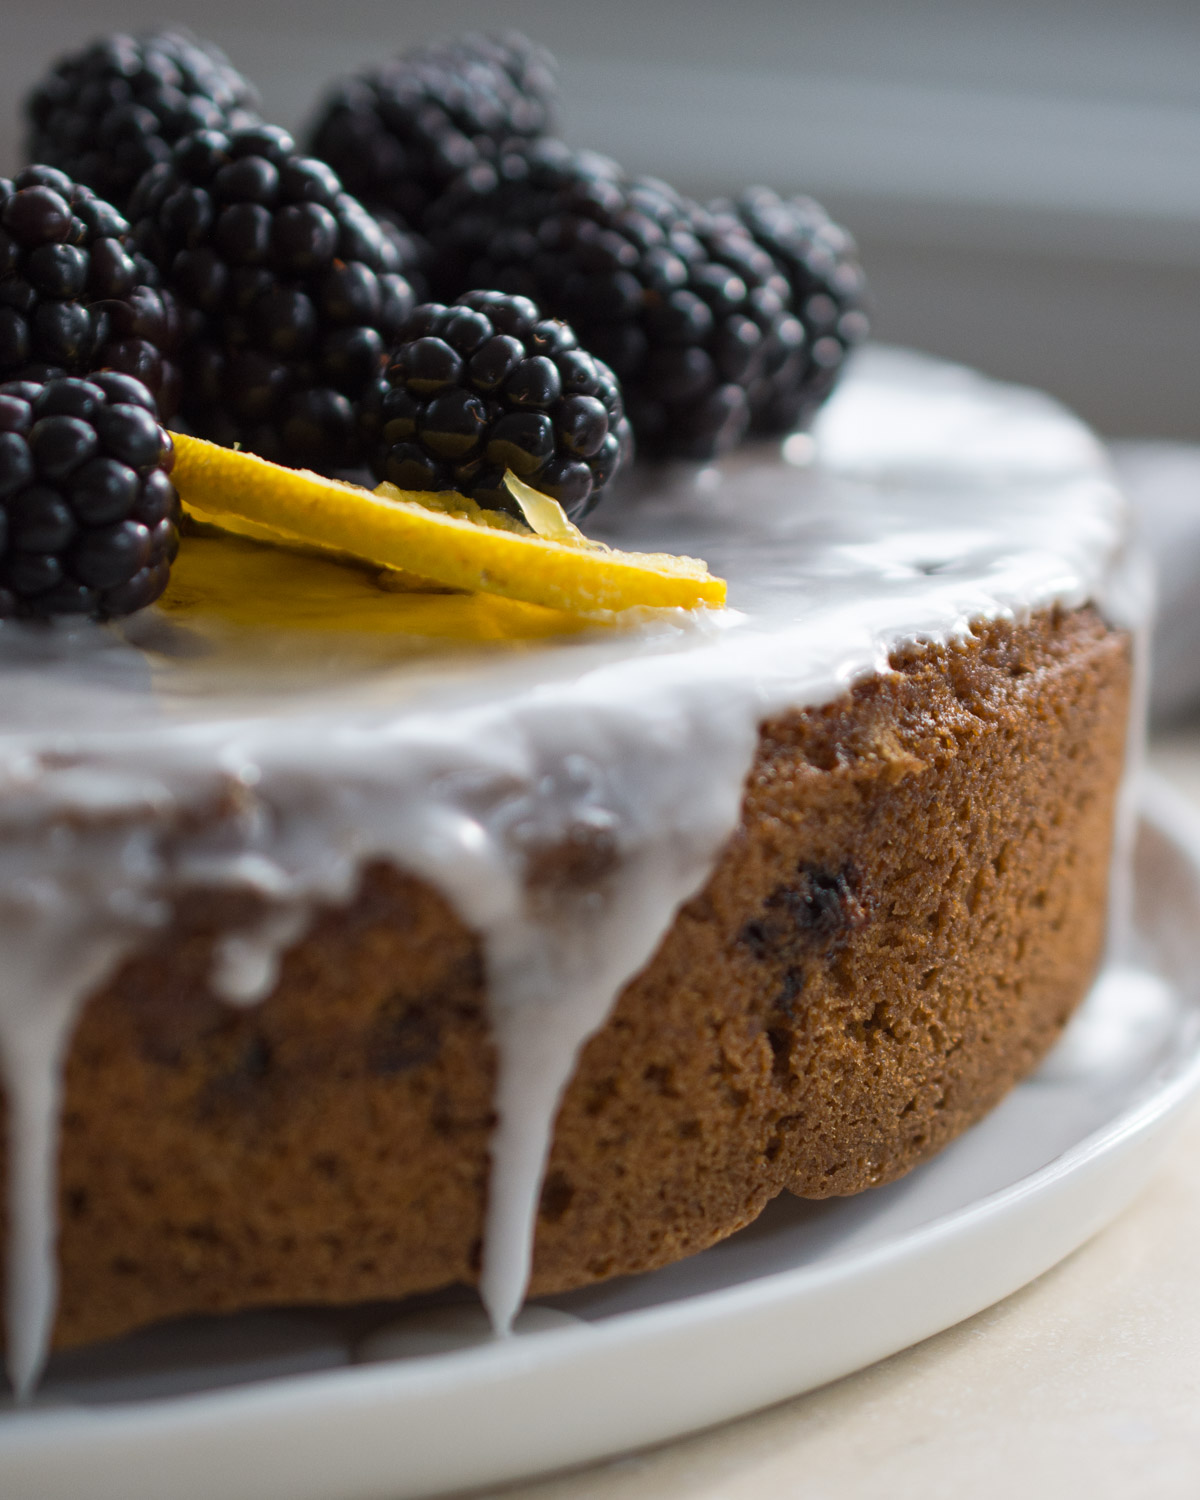 Orange Blackberry Olive Oil Cake with fresh blackberry garnish.